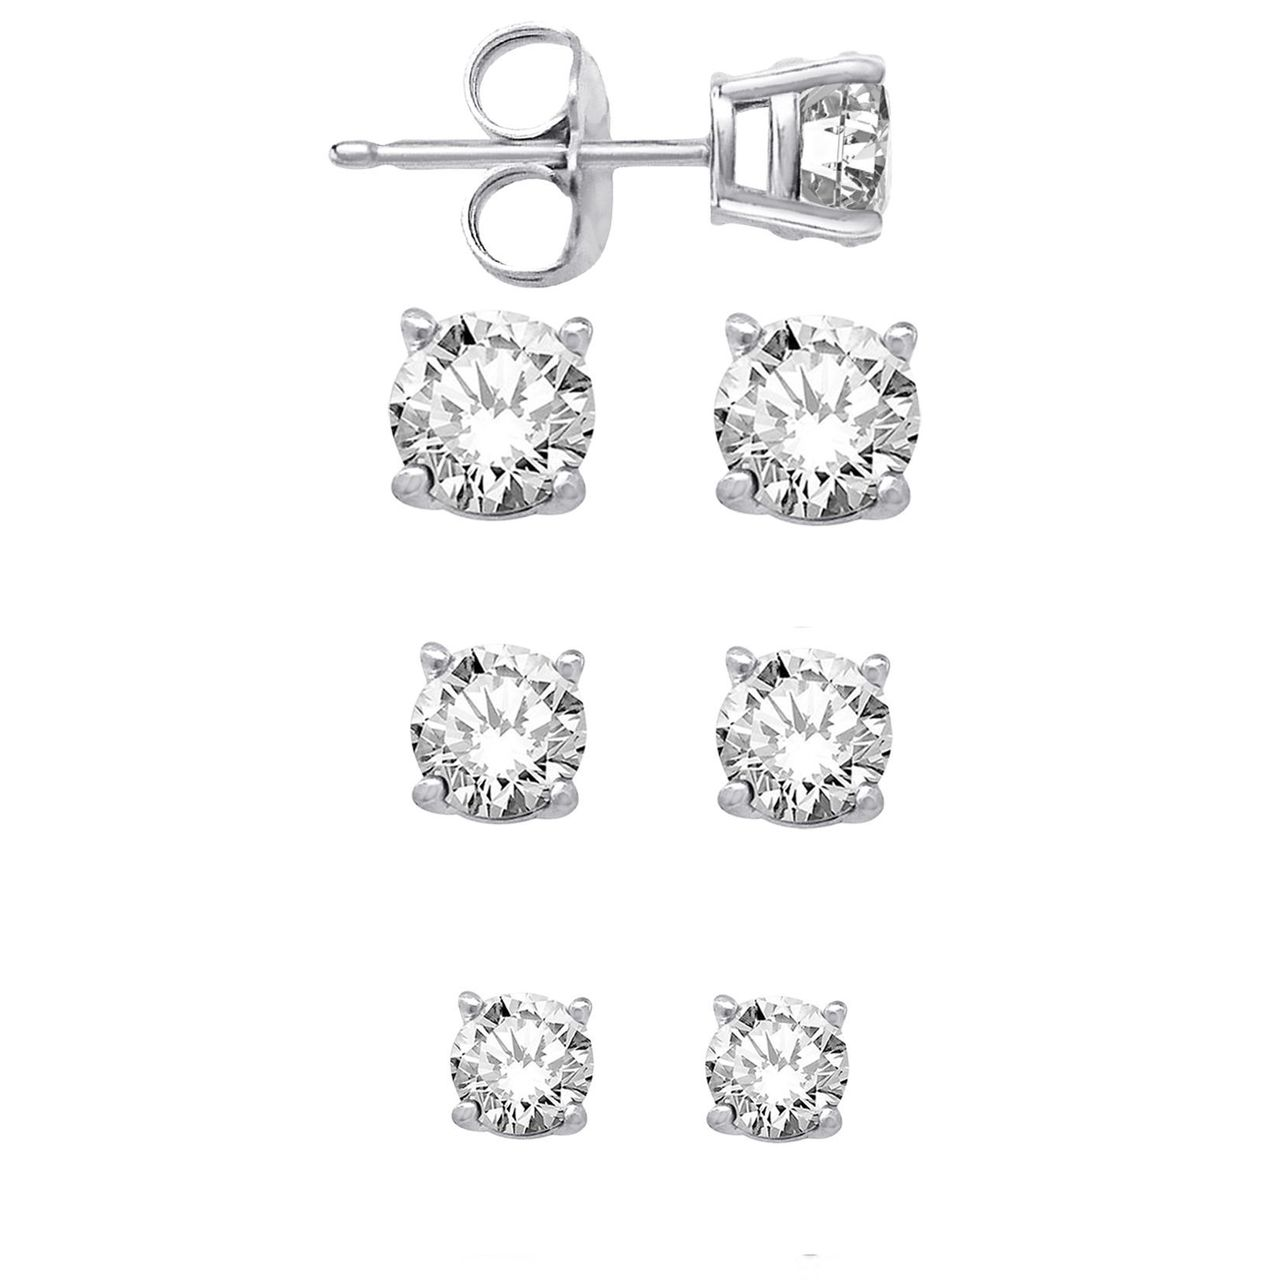 925 Sterling Silver Round Cz Stud Earrings Set Of Three Sizes 4mm 5mm 6mm